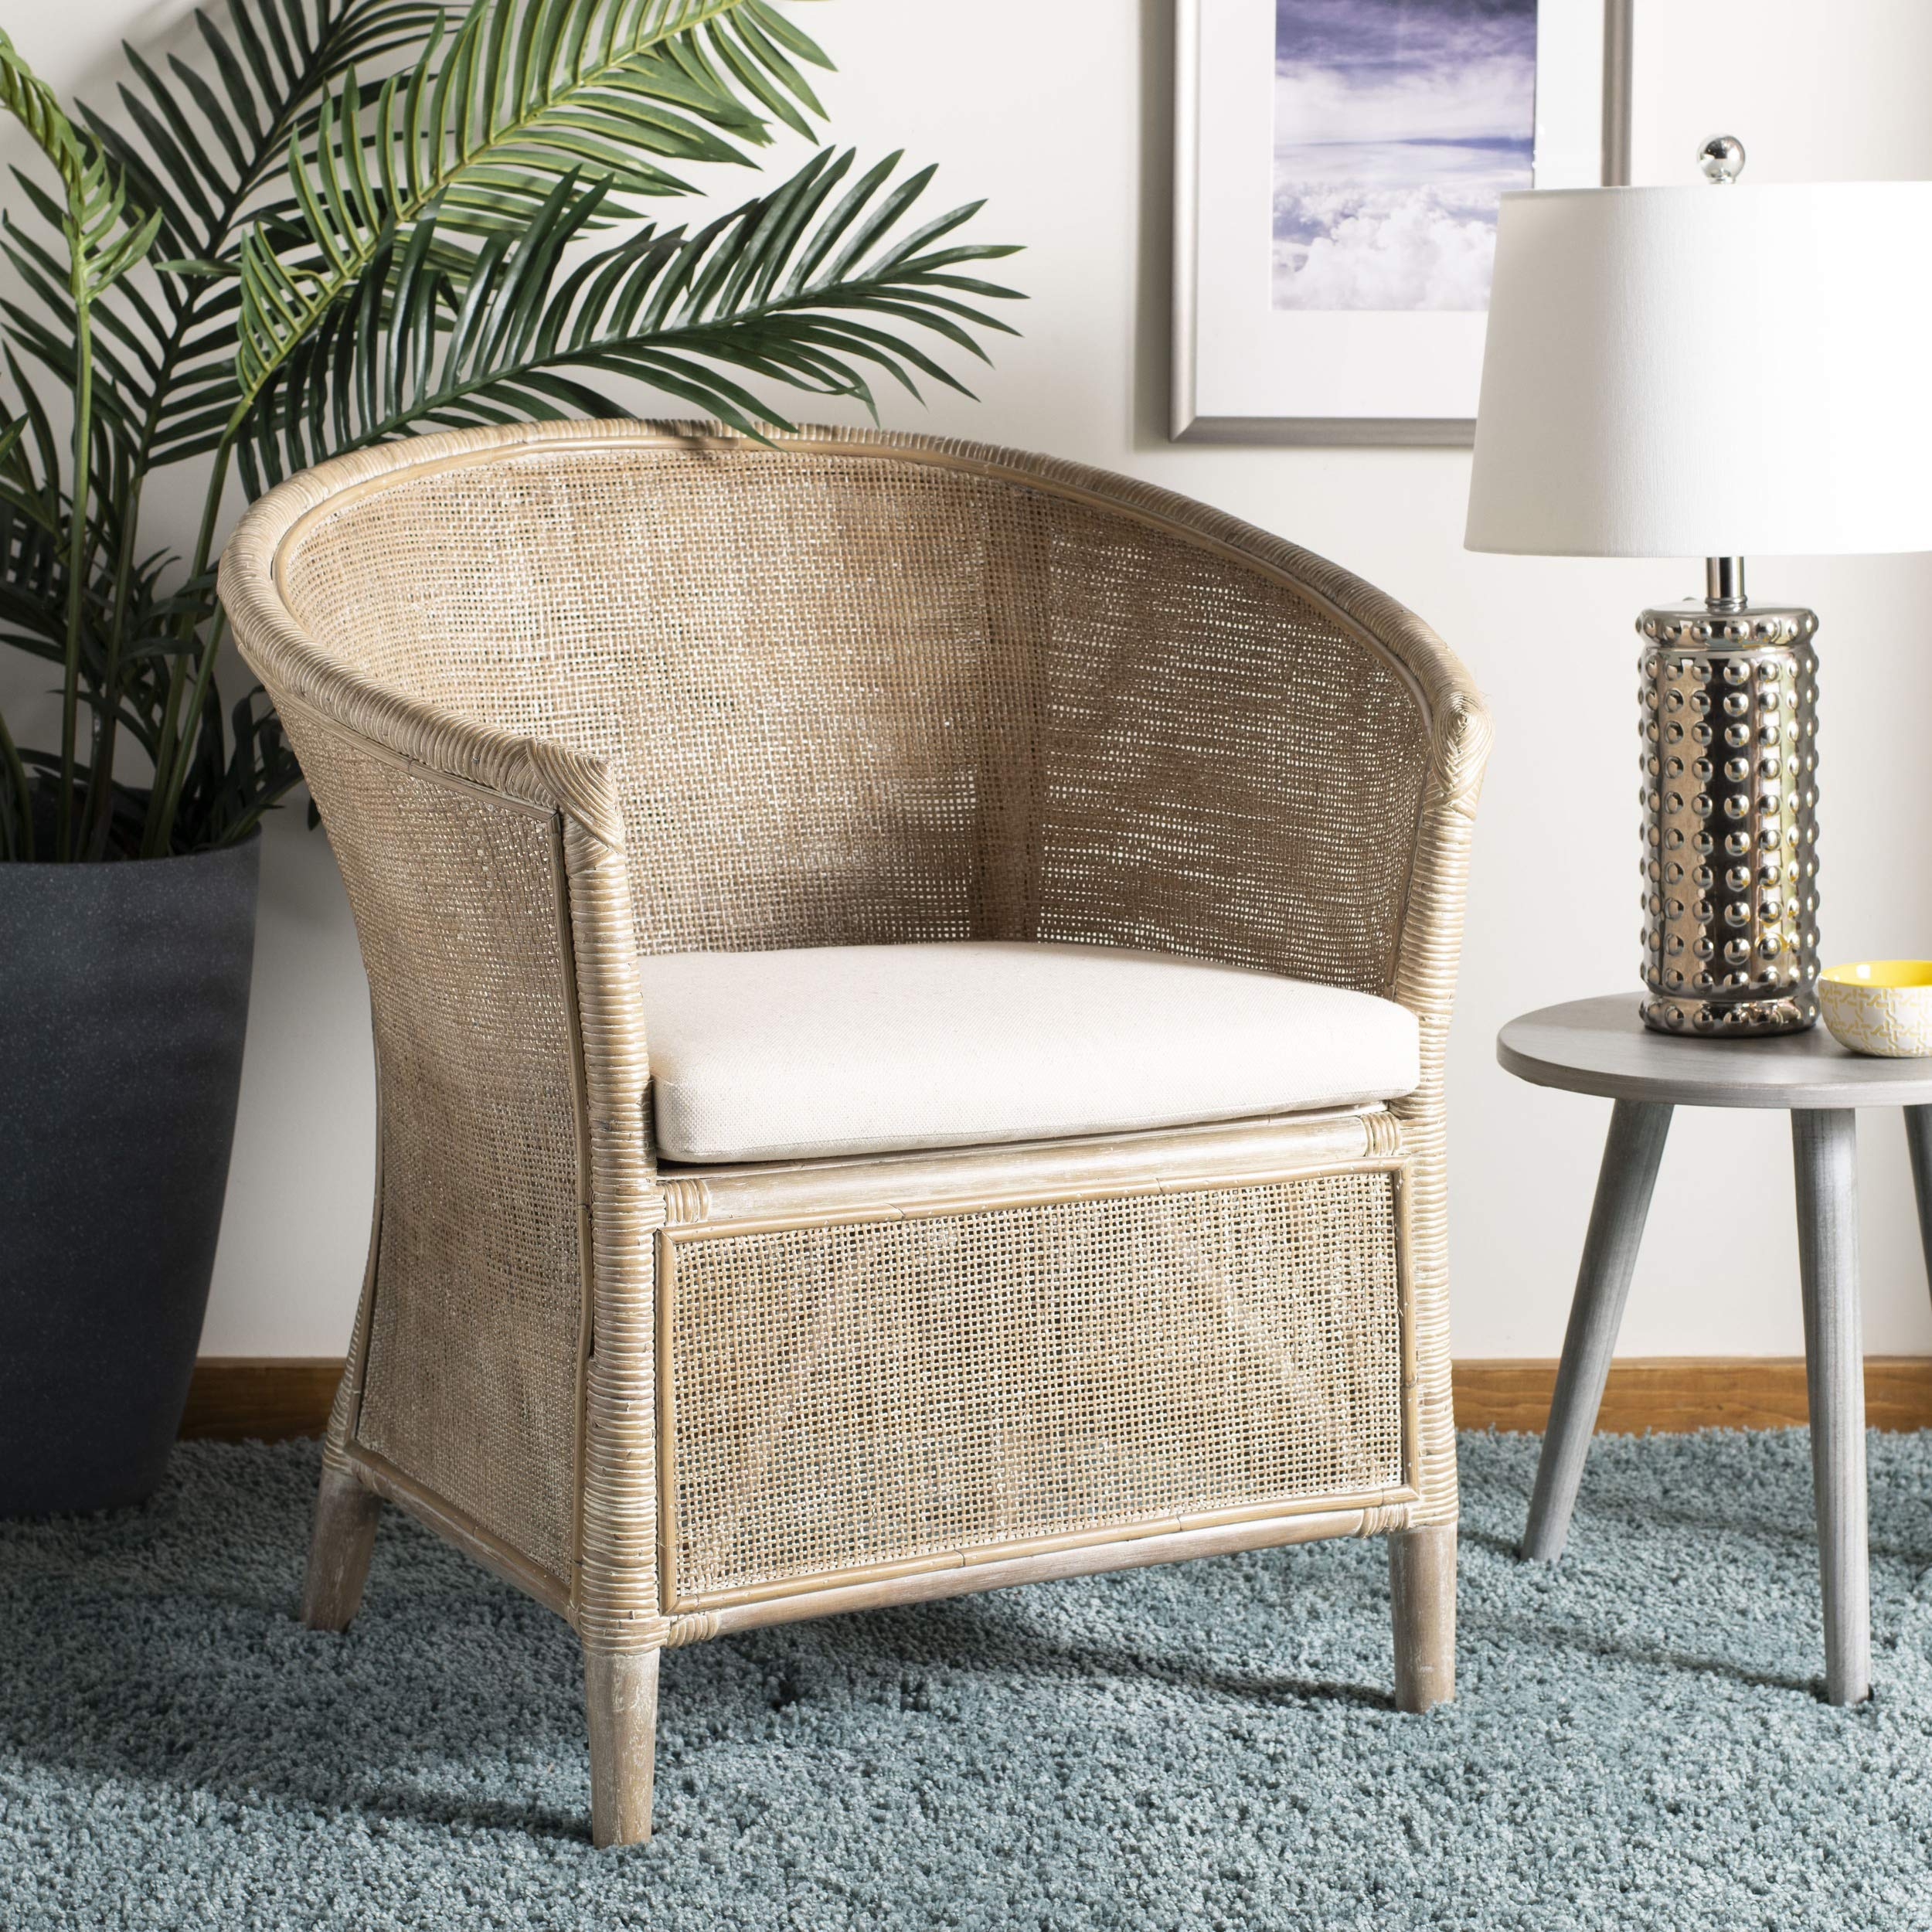 Safavieh Home Collection Alexana Rattan Grey White Wash Armchair Accent Chair by Safavieh